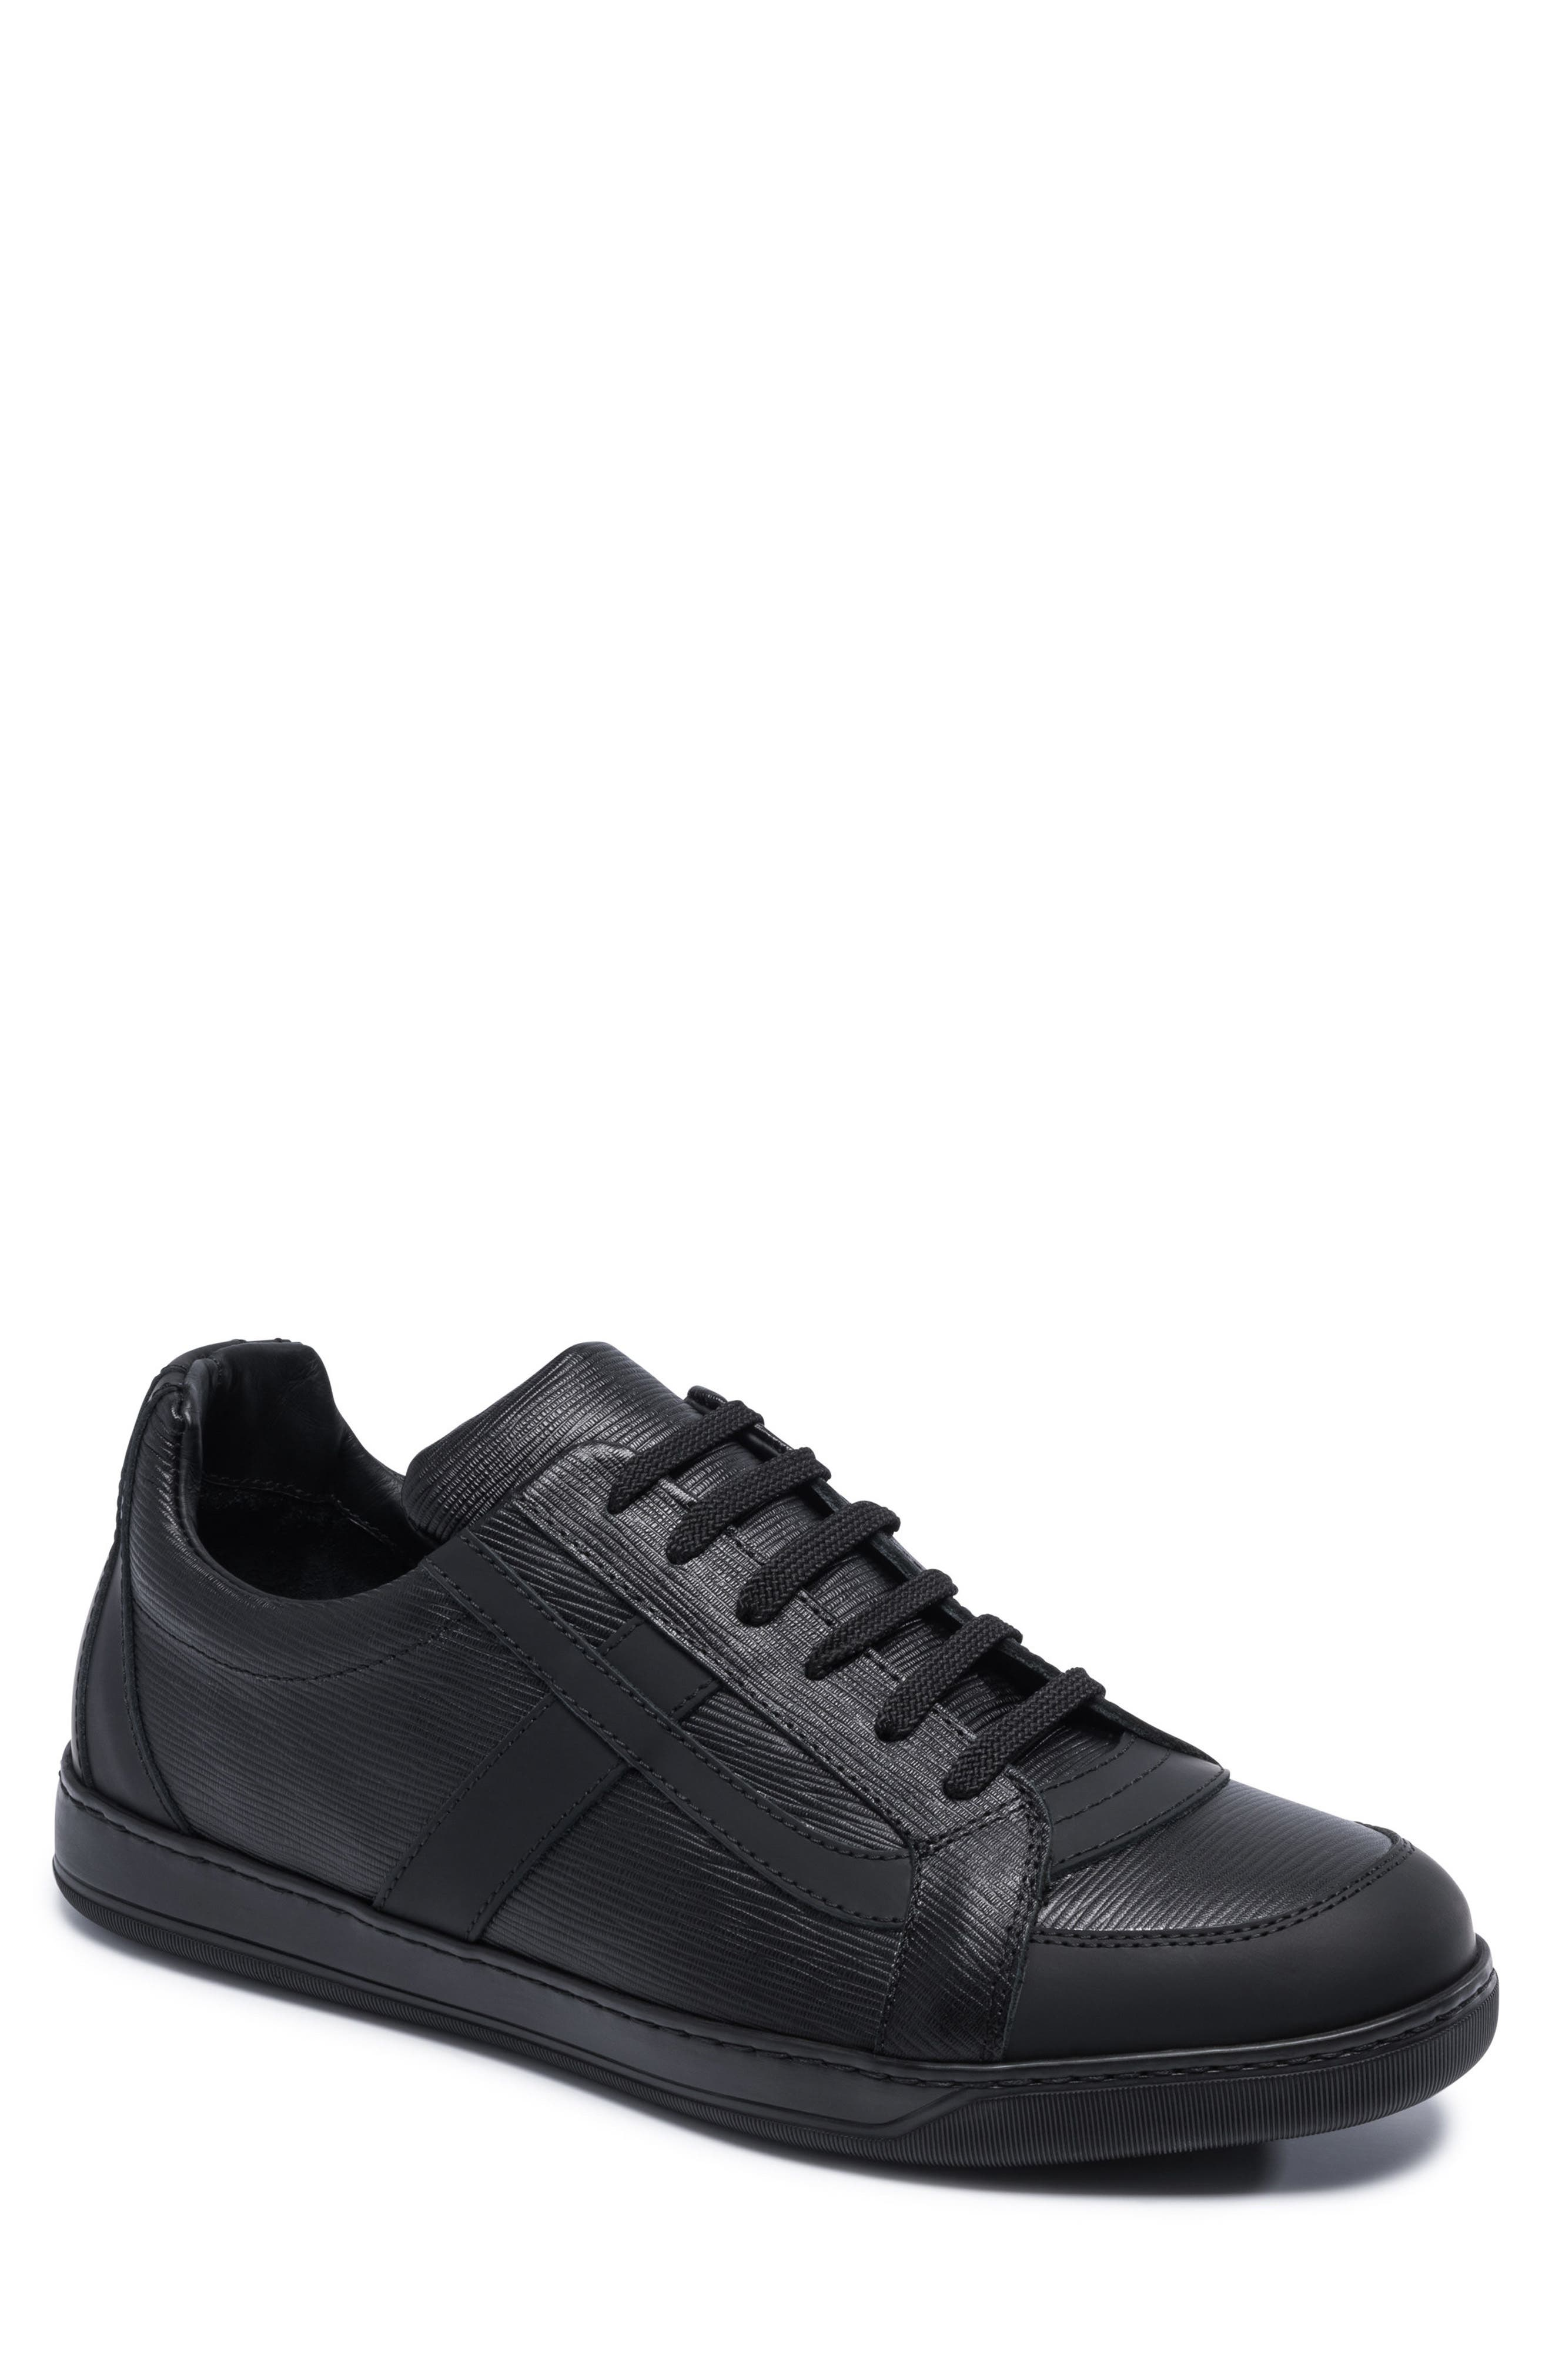 Novecento Sneaker,                             Main thumbnail 1, color,                             Navy Leather